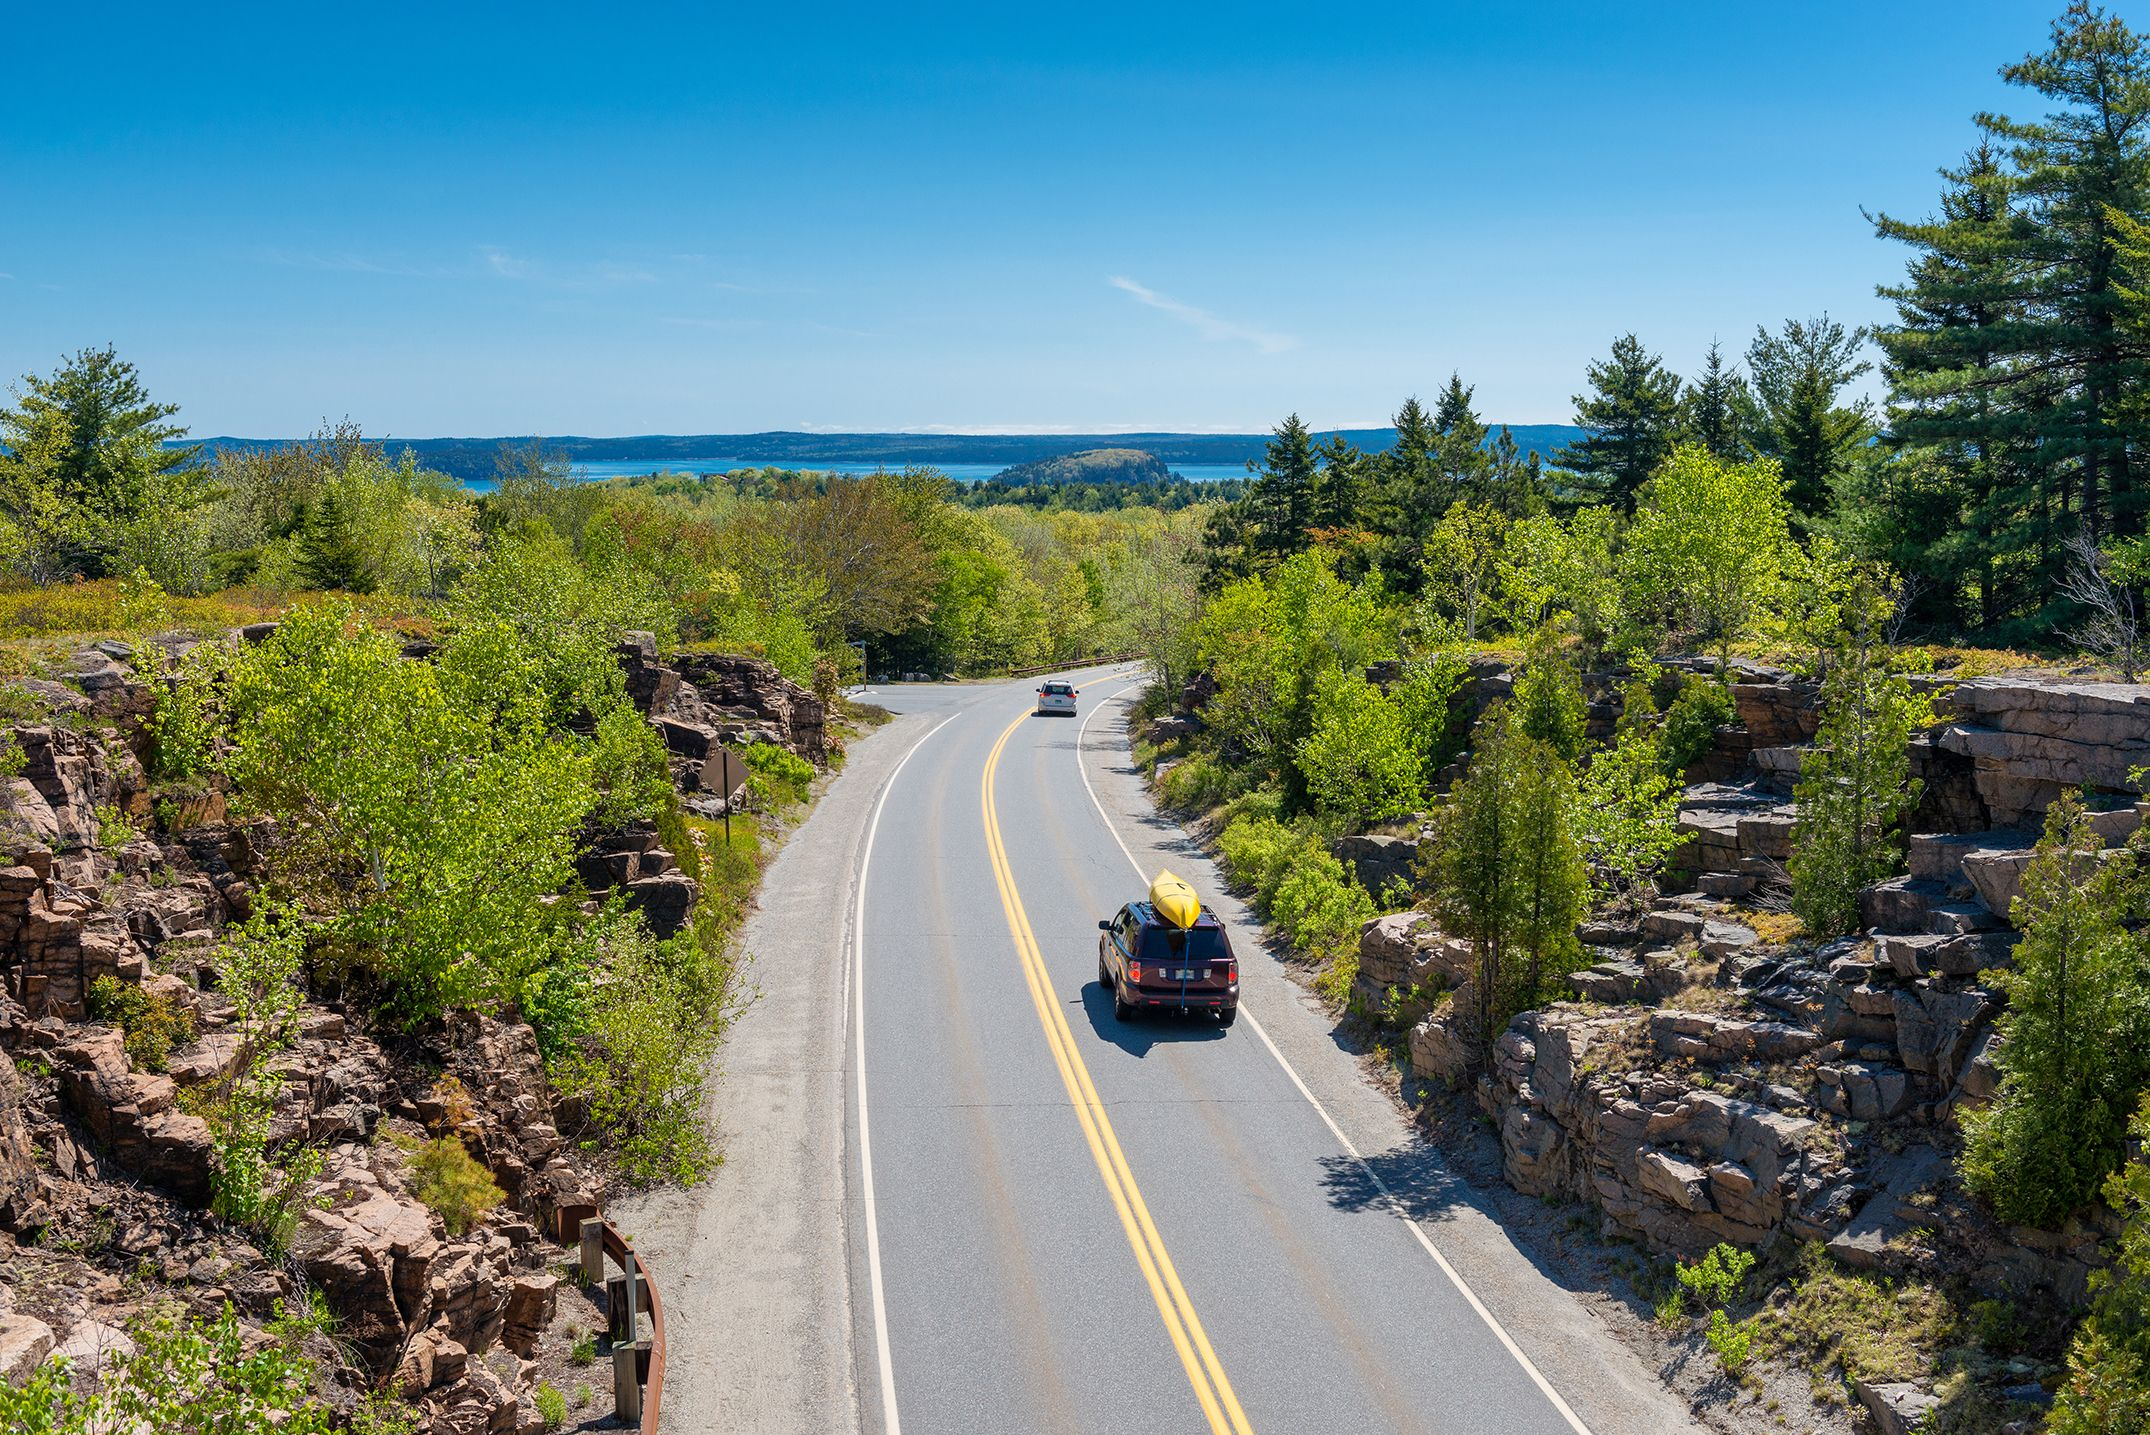 60 most scenic drives in america - beautiful drives in the usa